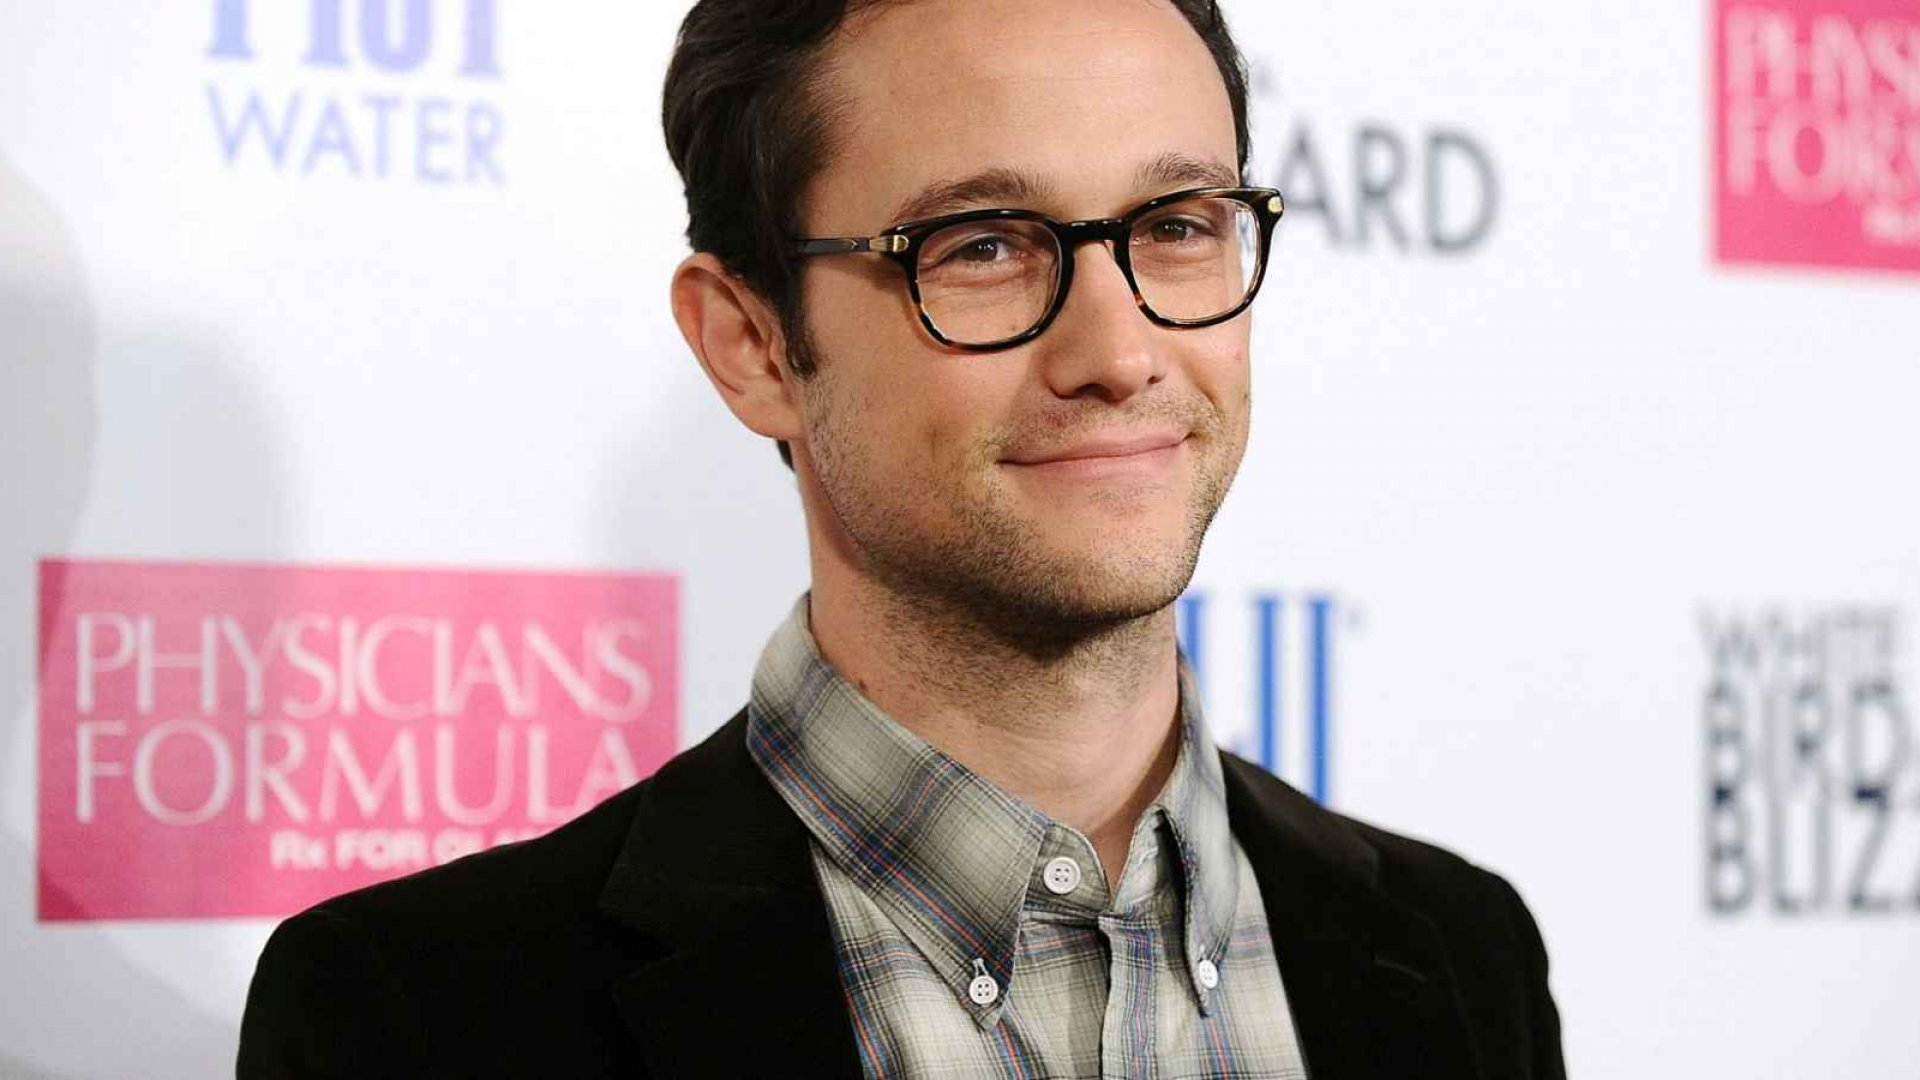 Why Joseph Gordon-Levitt Looks Differently at Tech After Playing Role In 'Snowden'